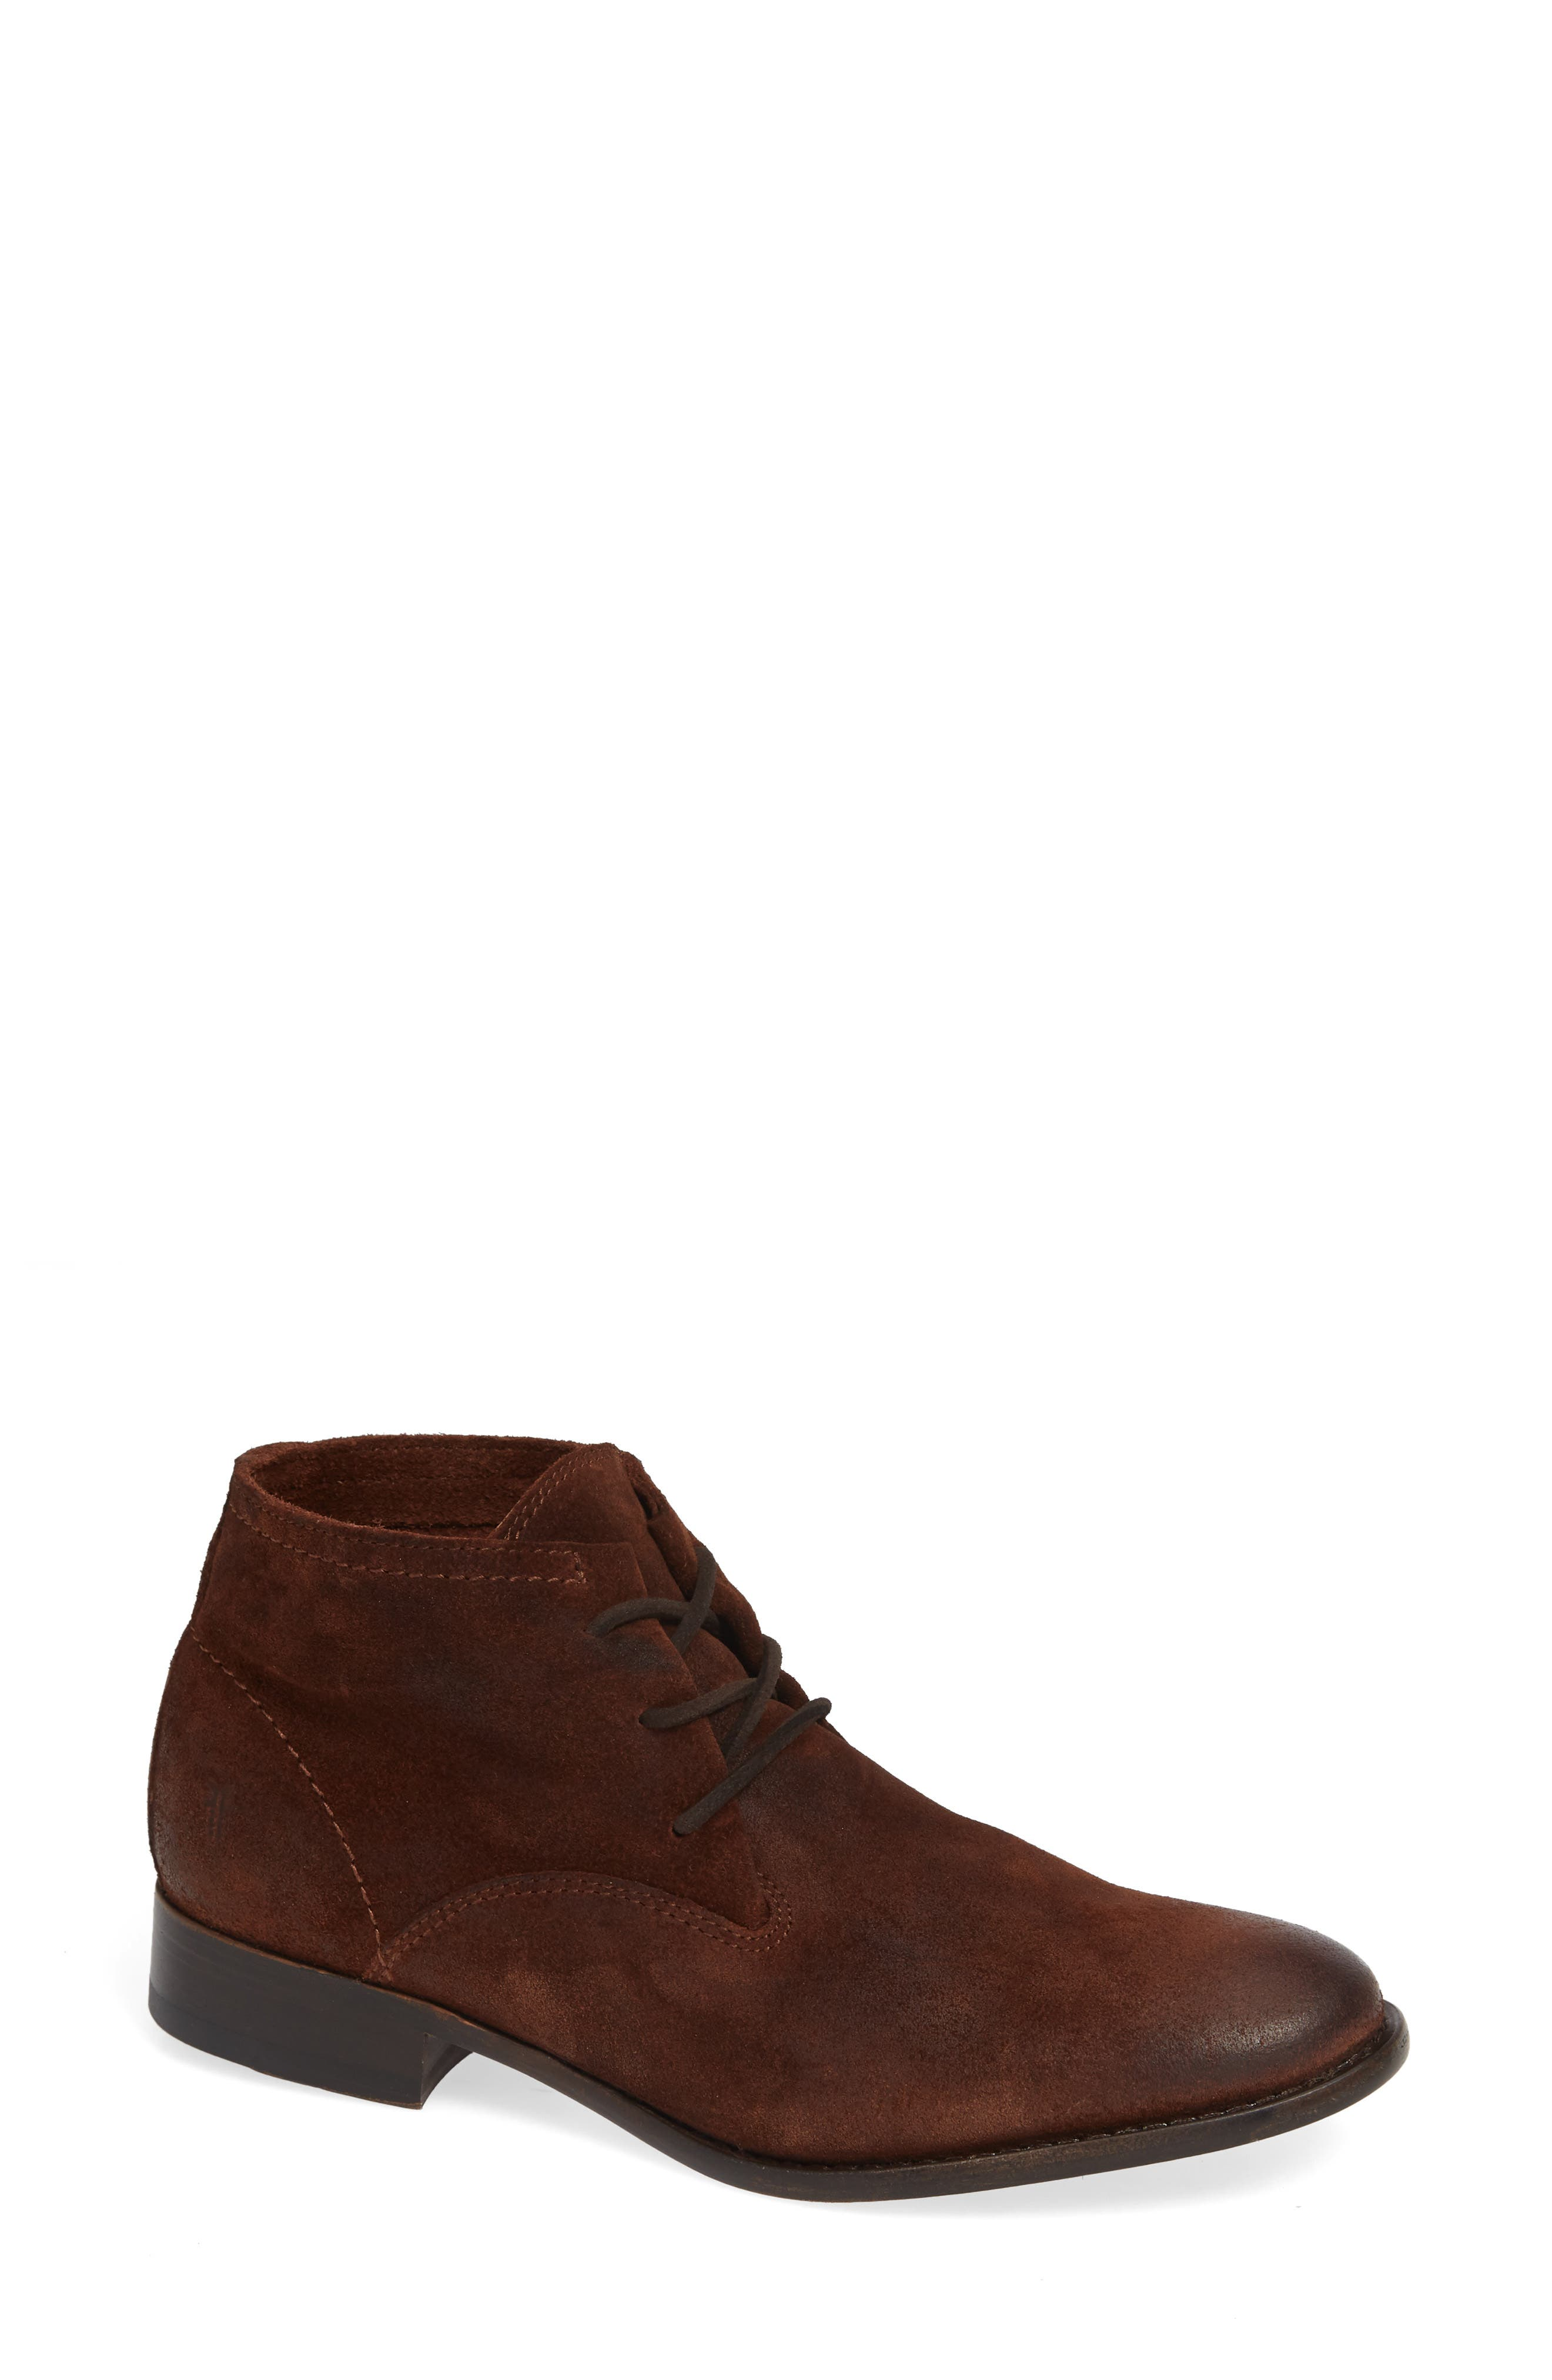 Frye Carly Bootie- Brown